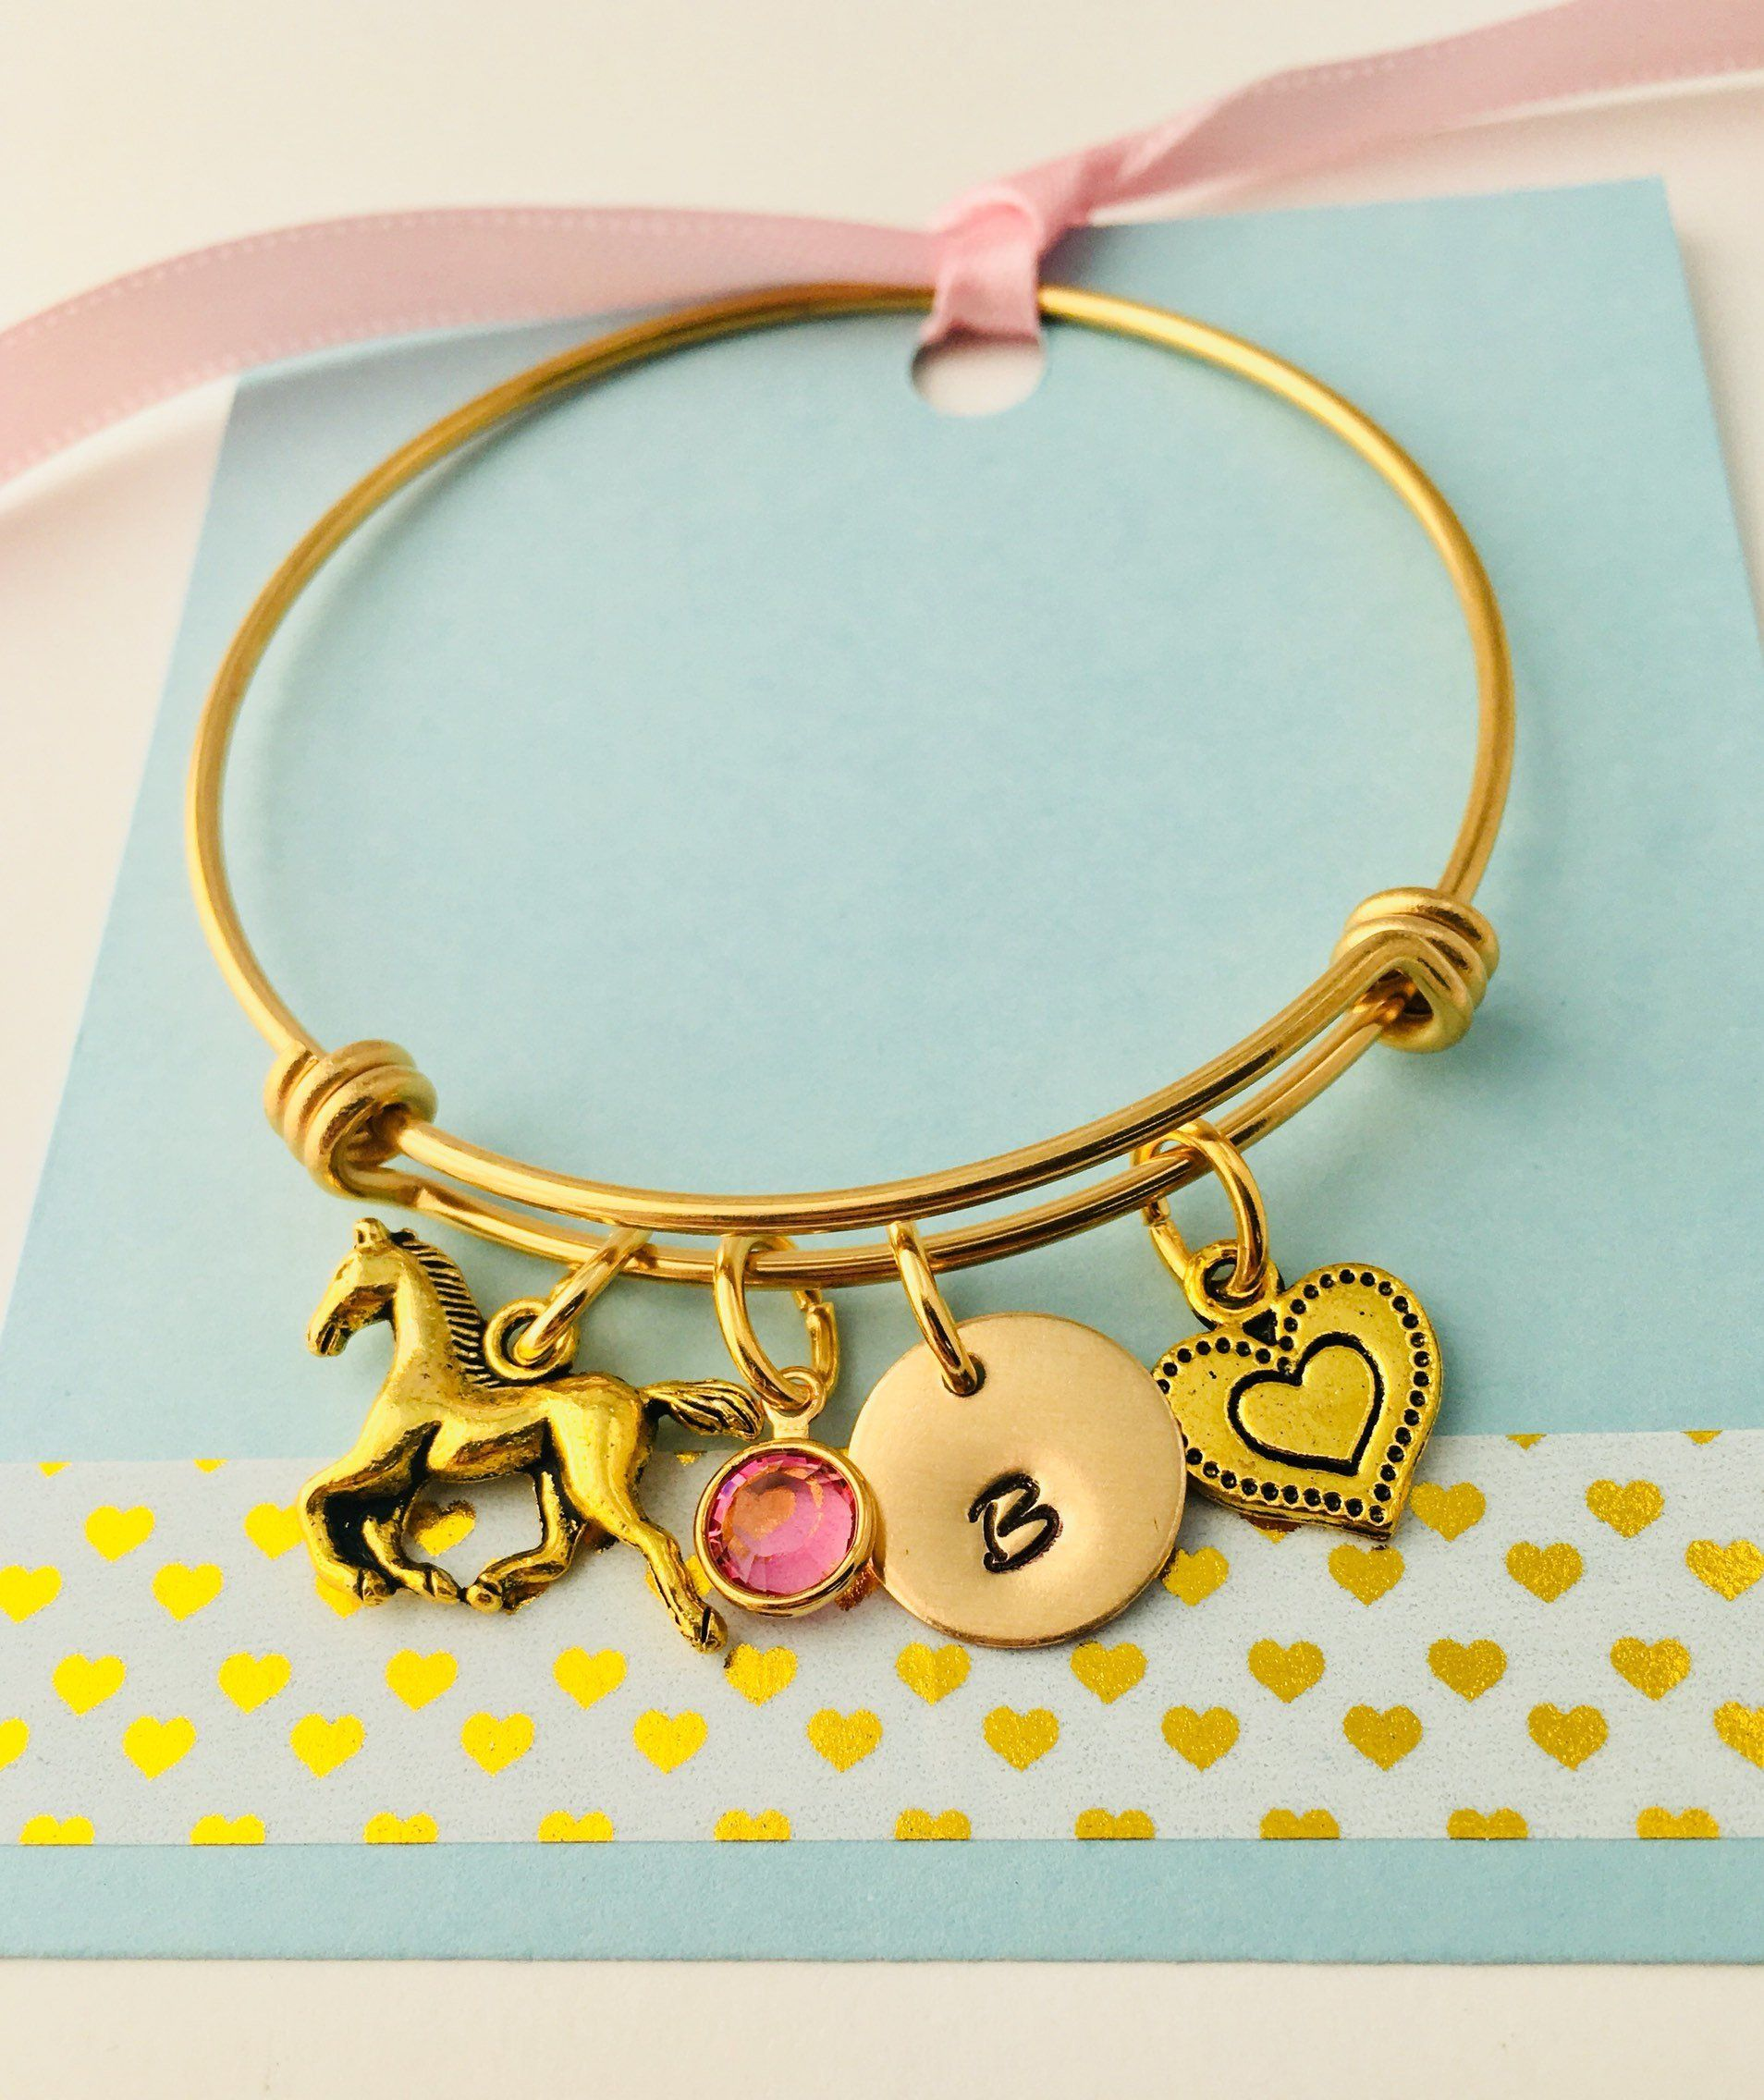 0a2f19a845171 Personalized Gold Horse Bracelet, Horse Jewelry, Little Girls ...